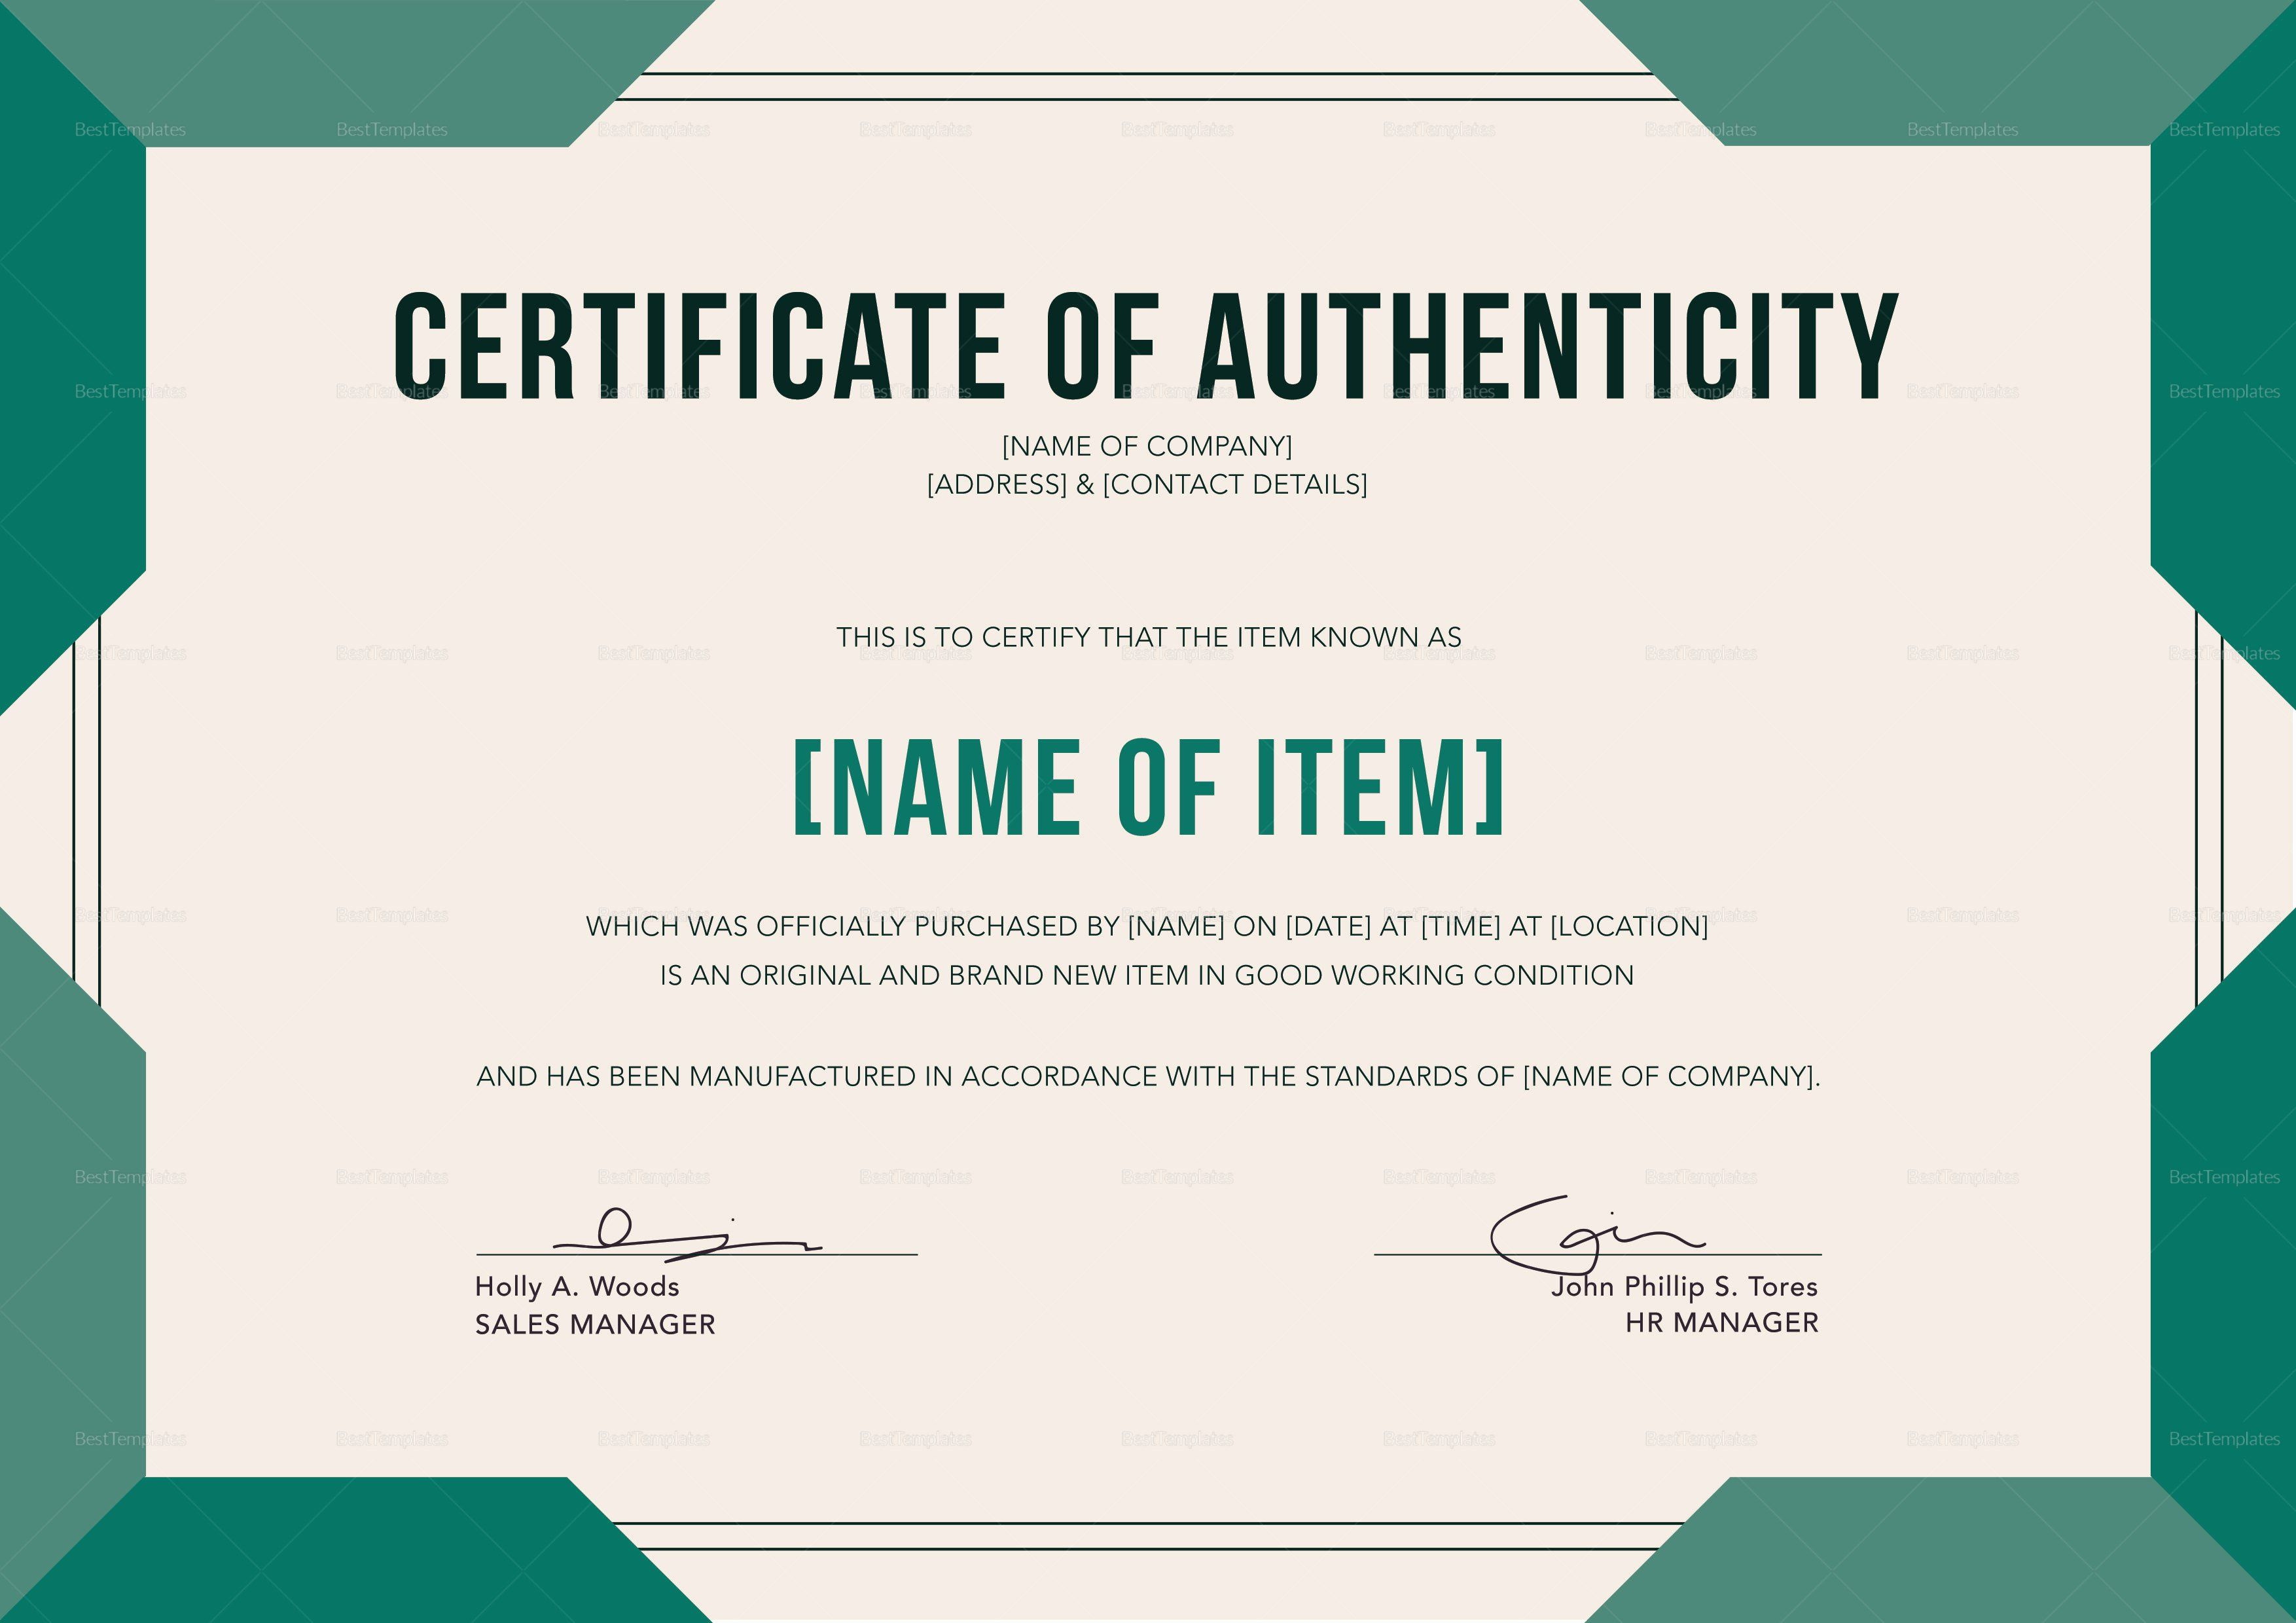 0e485c620a50f2318746baf25013168e - How To Get A Letter Of Authenticity For An Autograph